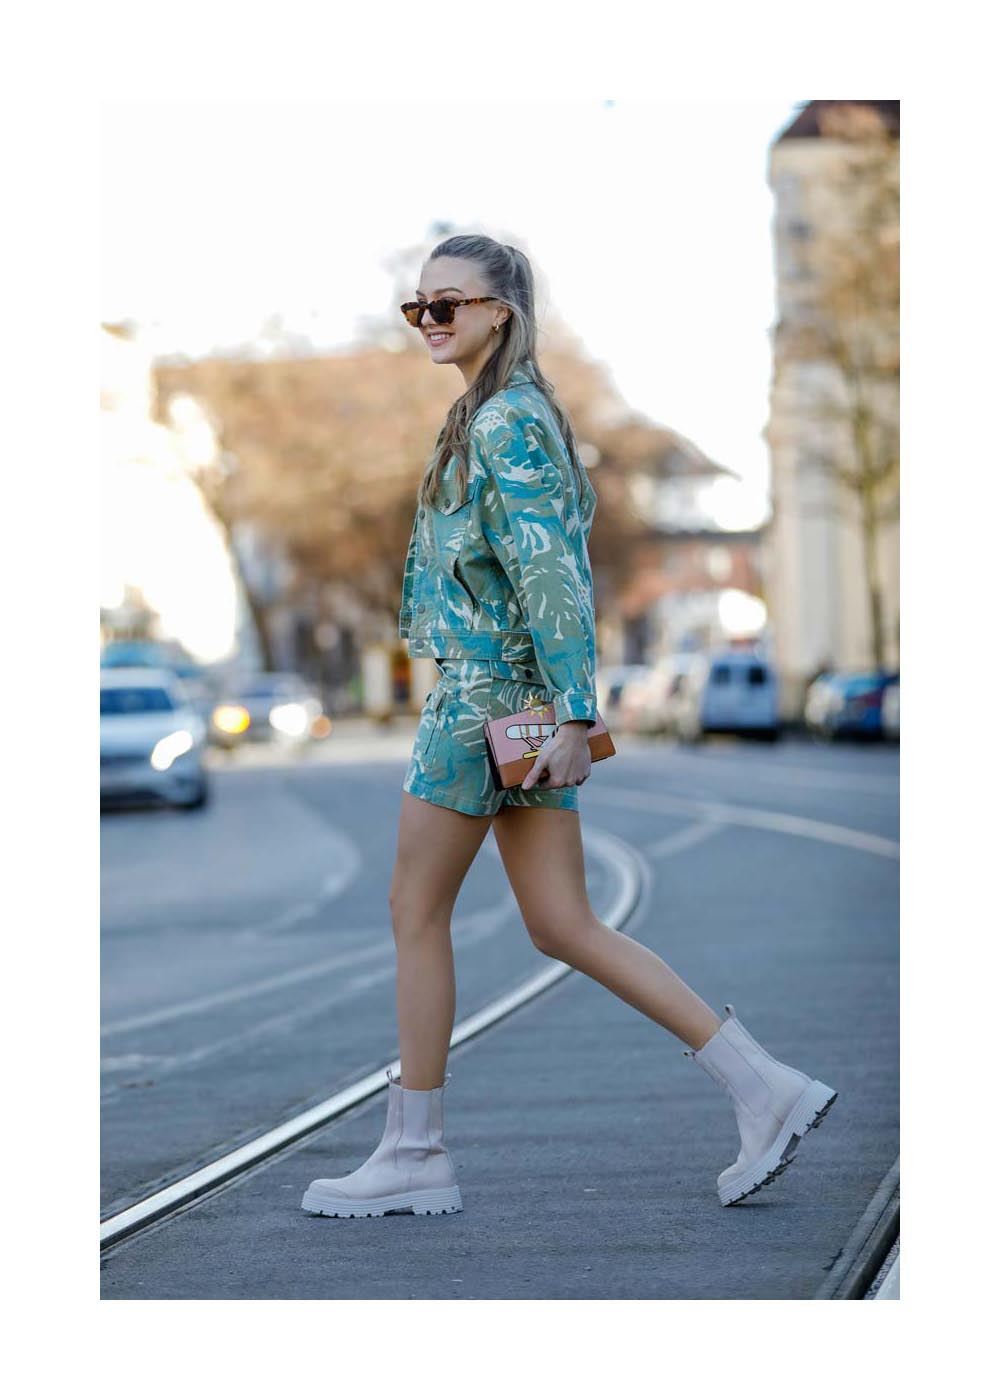 Lilly Krug Street Style Shooting In Munich